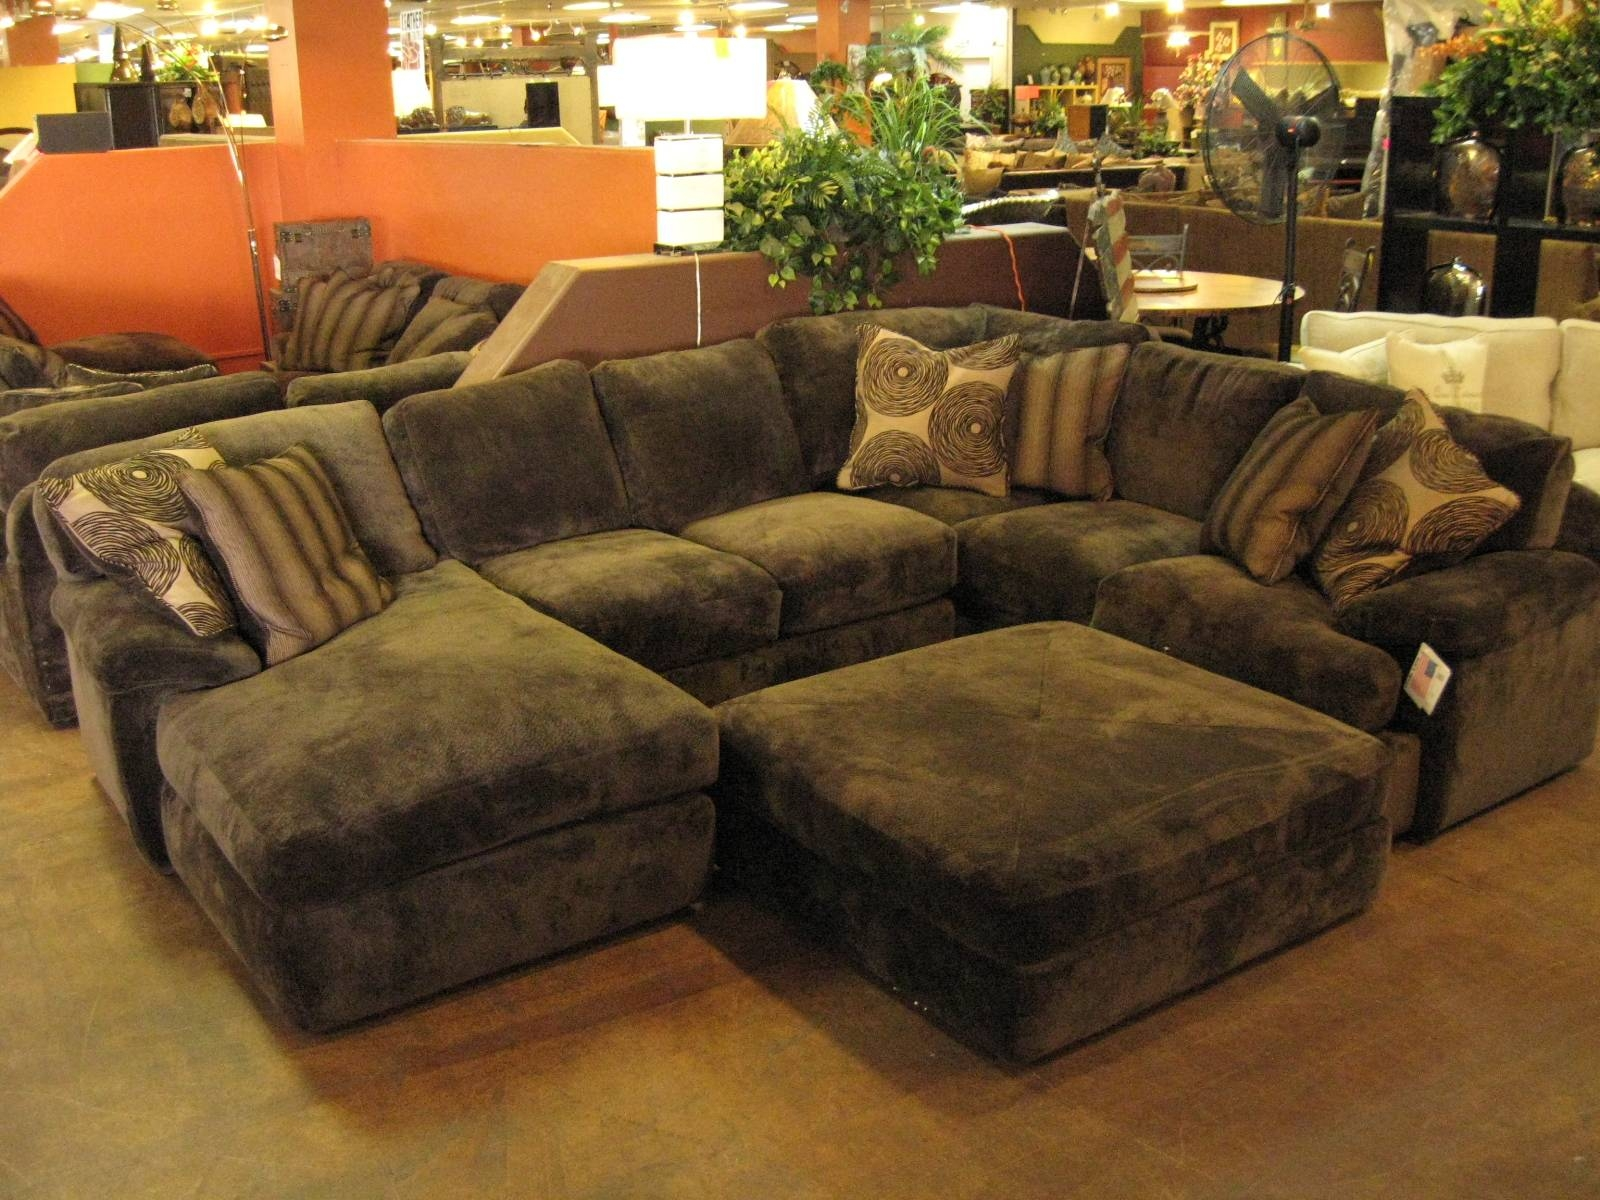 Robert Michaels Furniture, Direct Furnishings Outlet with Champion Sectional Sofa (Image 22 of 30)